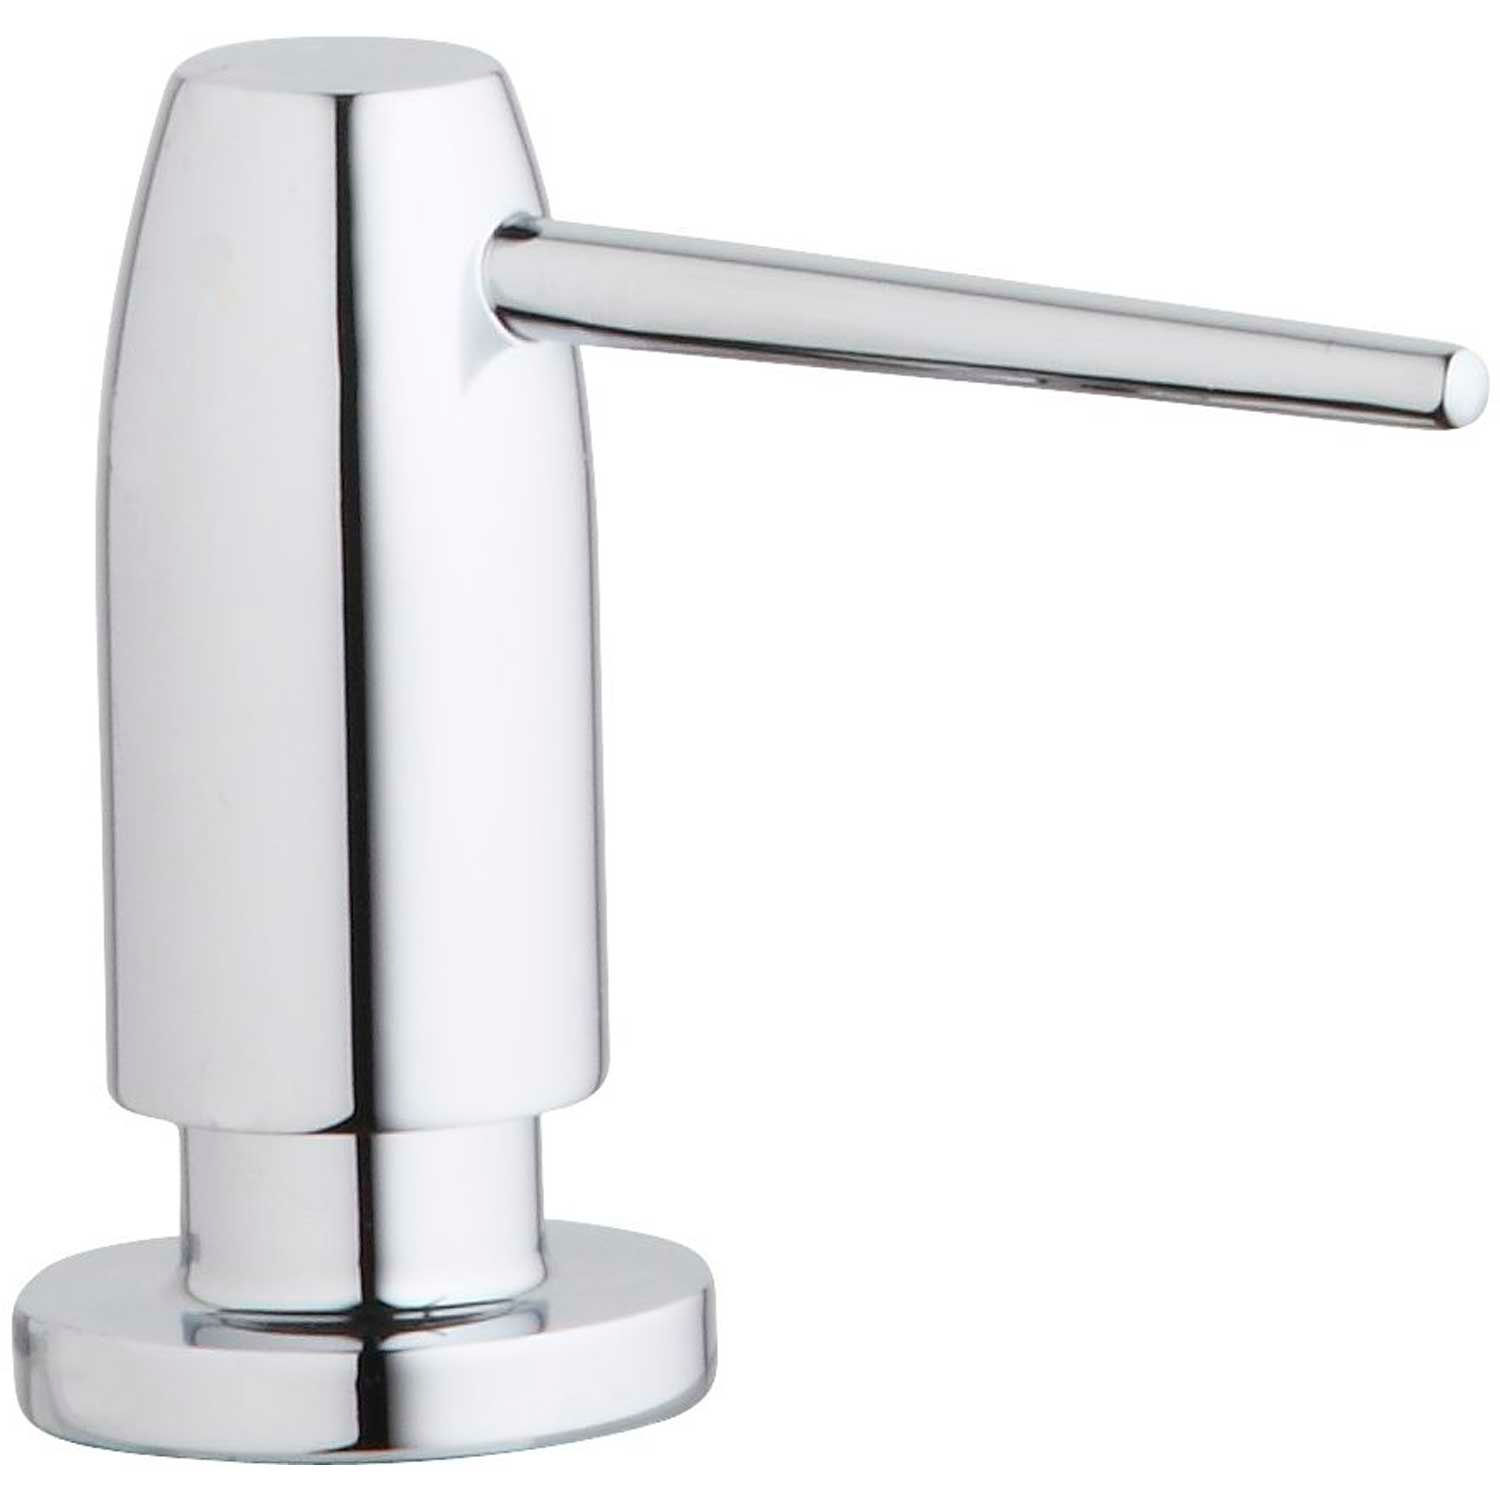 Elkay LKEC1054NK SOAP Dispenser Brushed Nickel